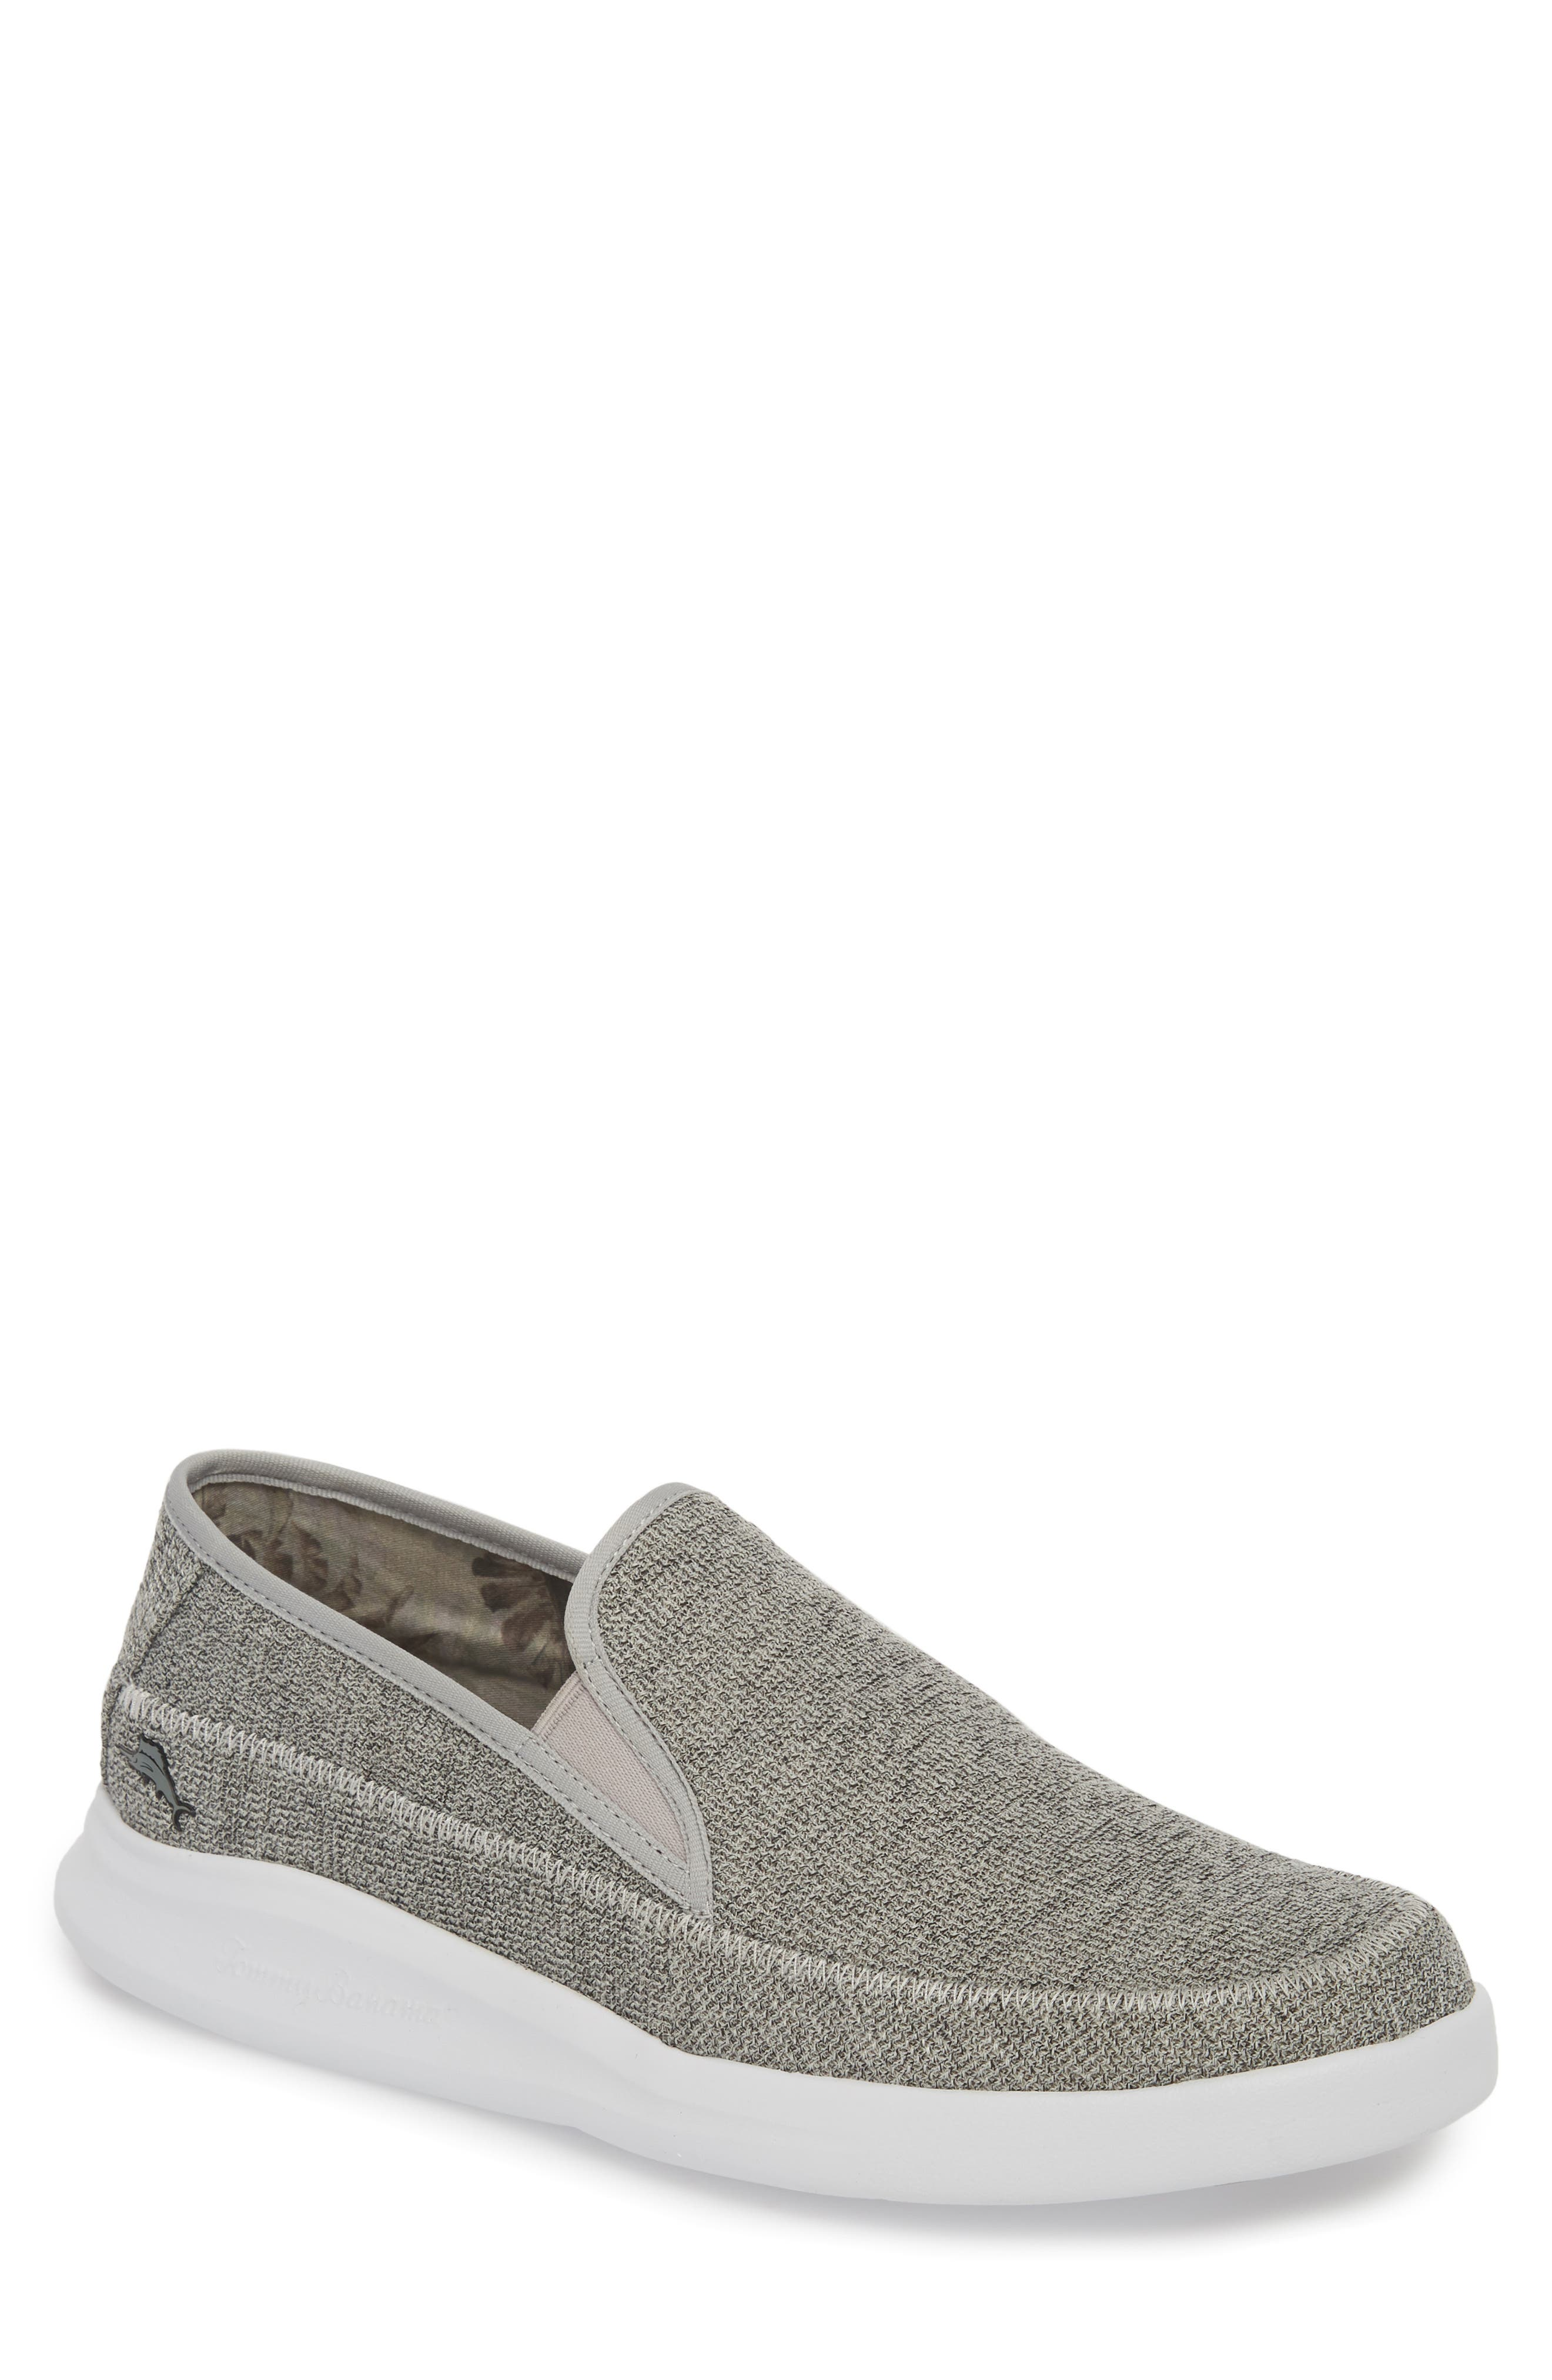 Acklins Relaxology Slip-On,                             Main thumbnail 1, color,                             LIGHT GREY TEXTILE